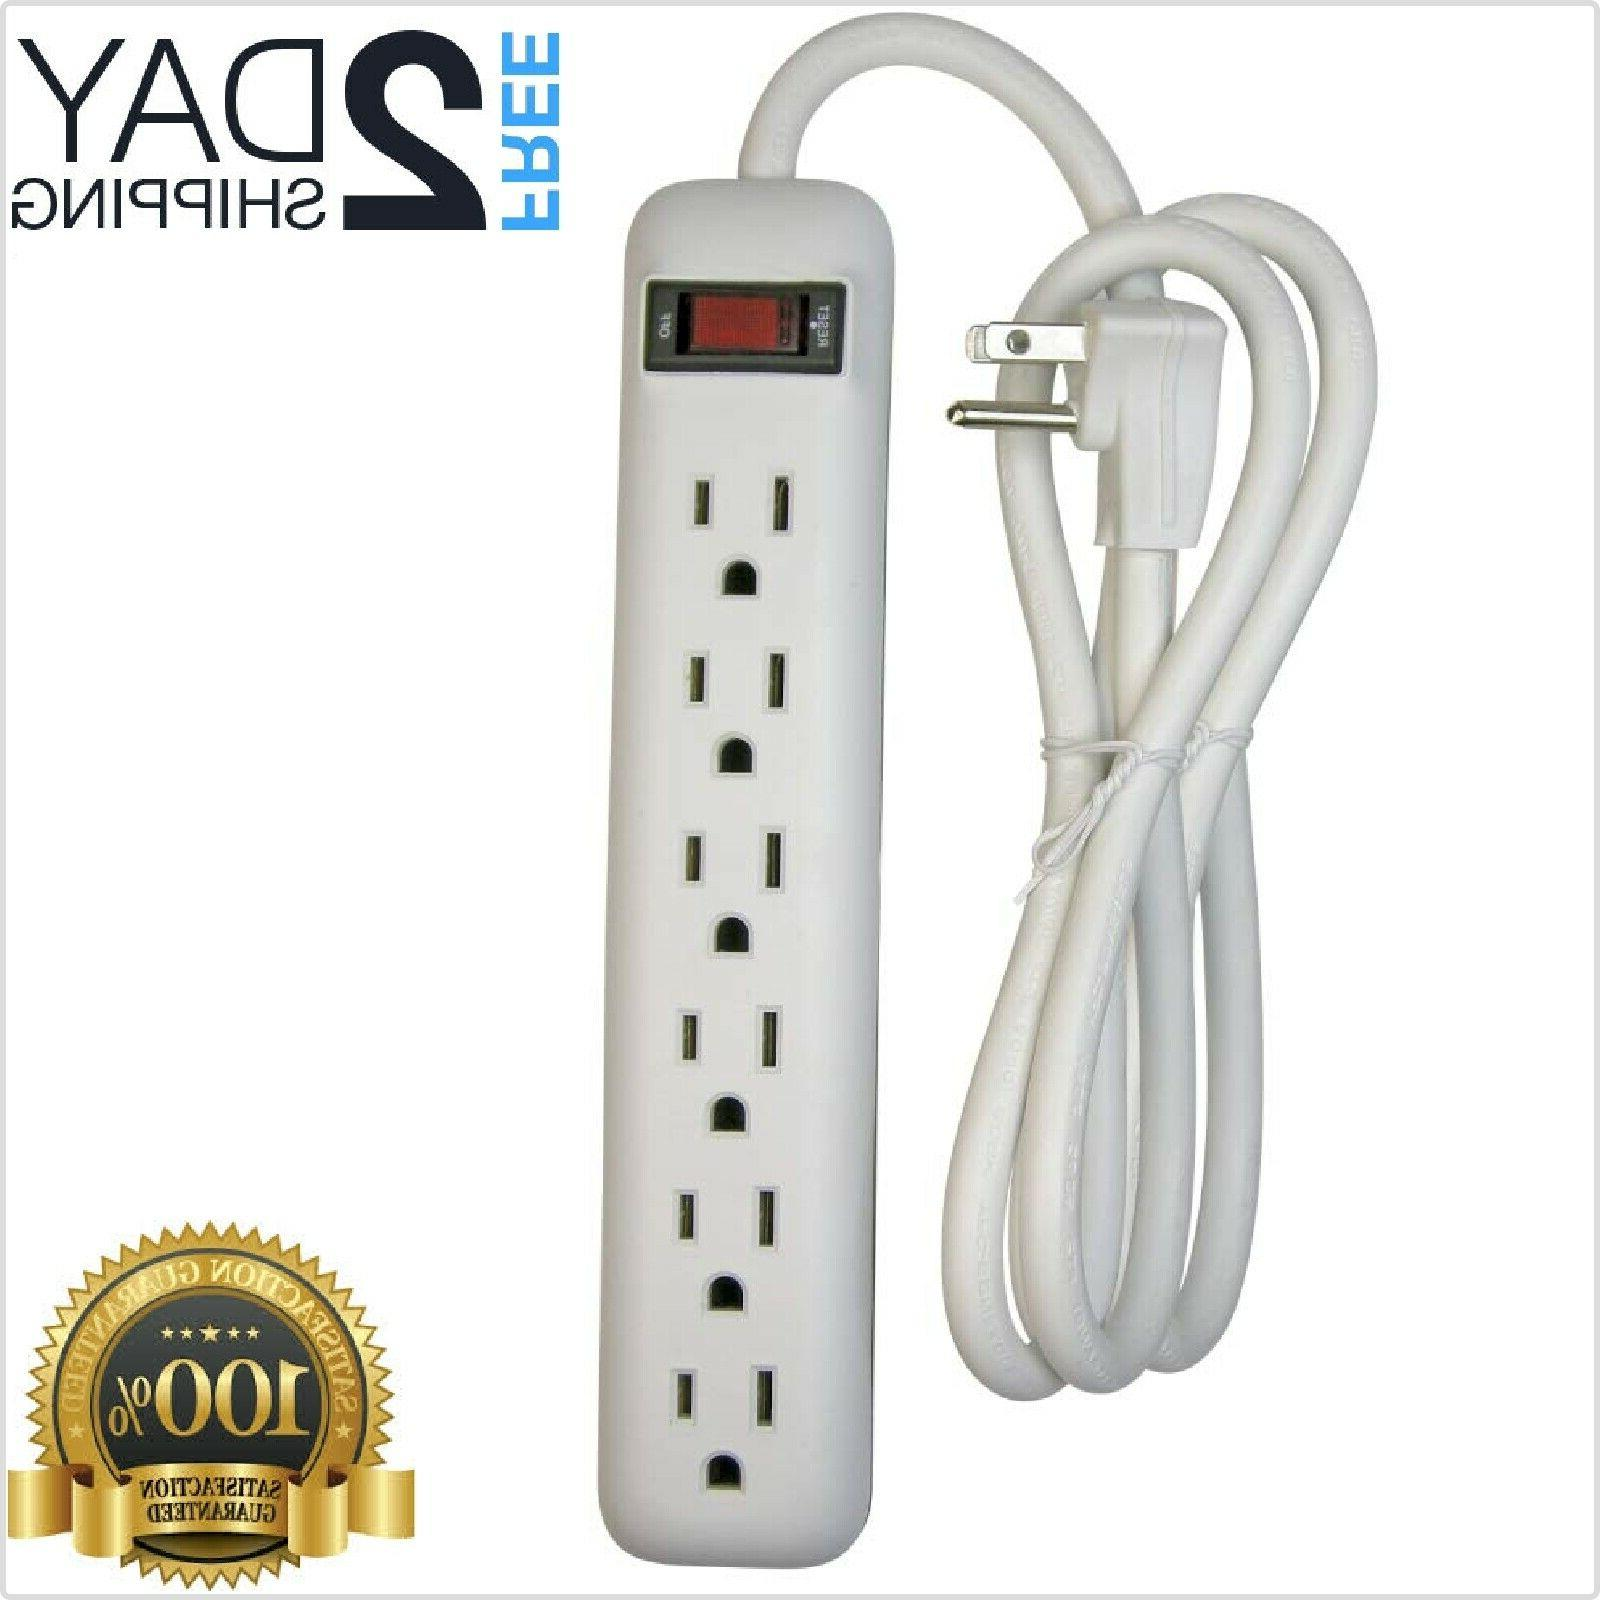 black 6 outlet power strip with surge